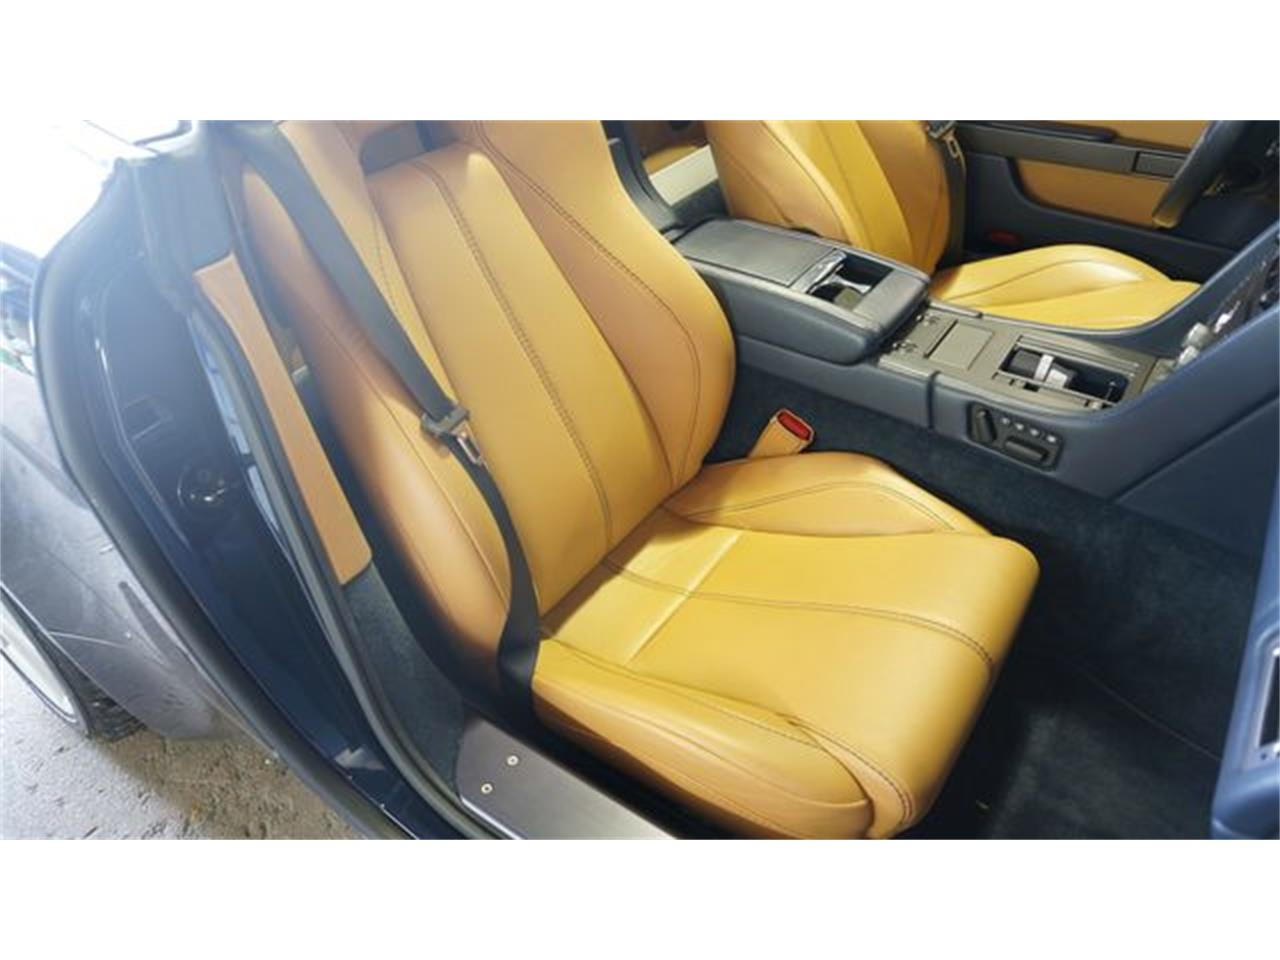 Large Picture of '08 Aston Martin Vantage located in Valley Park Missouri - $46,295.00 - PZRM